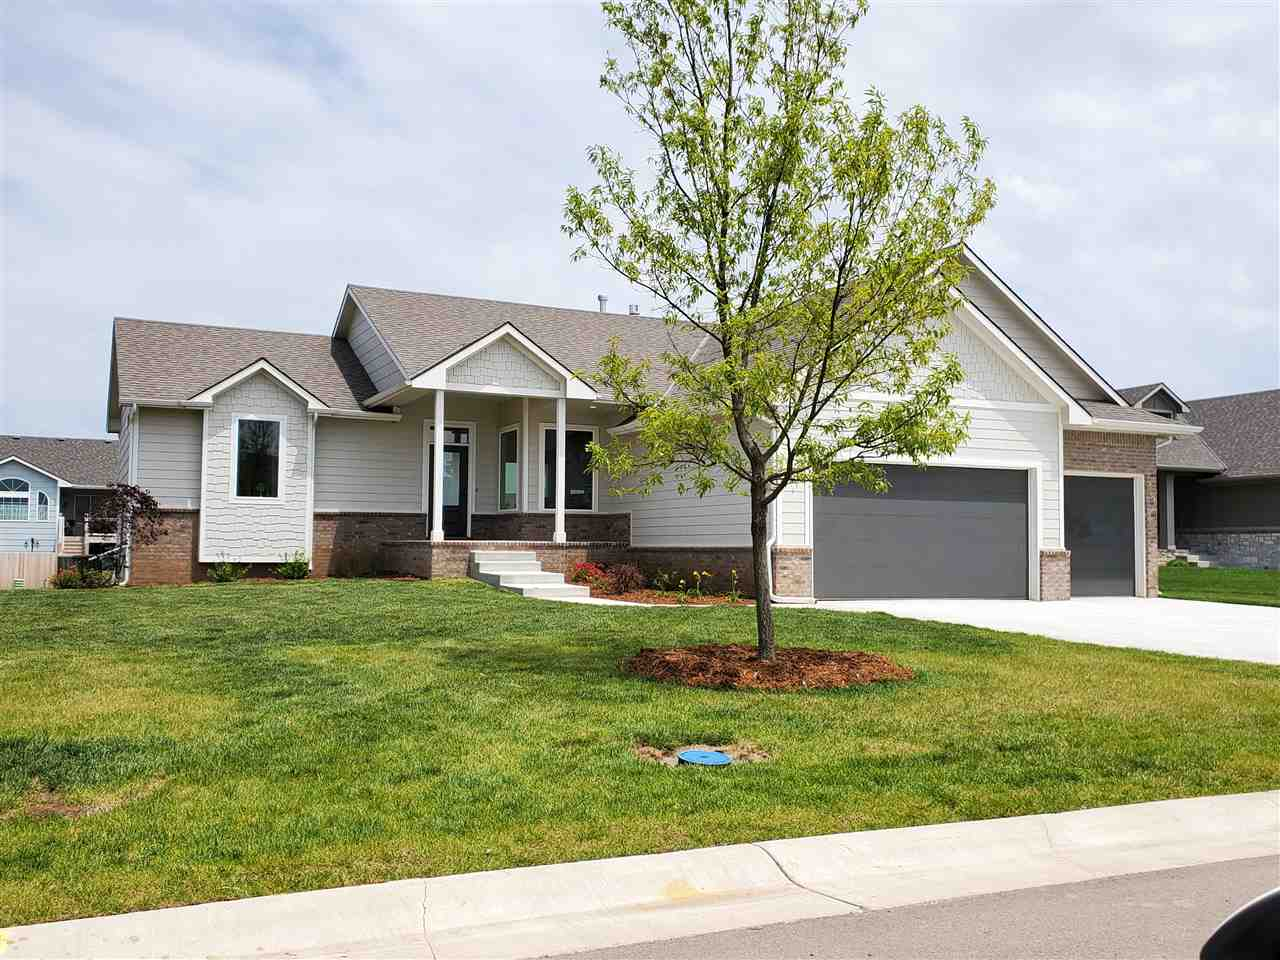 For Sale: 3412 Lori Ct, Wichita, KS, 67210,